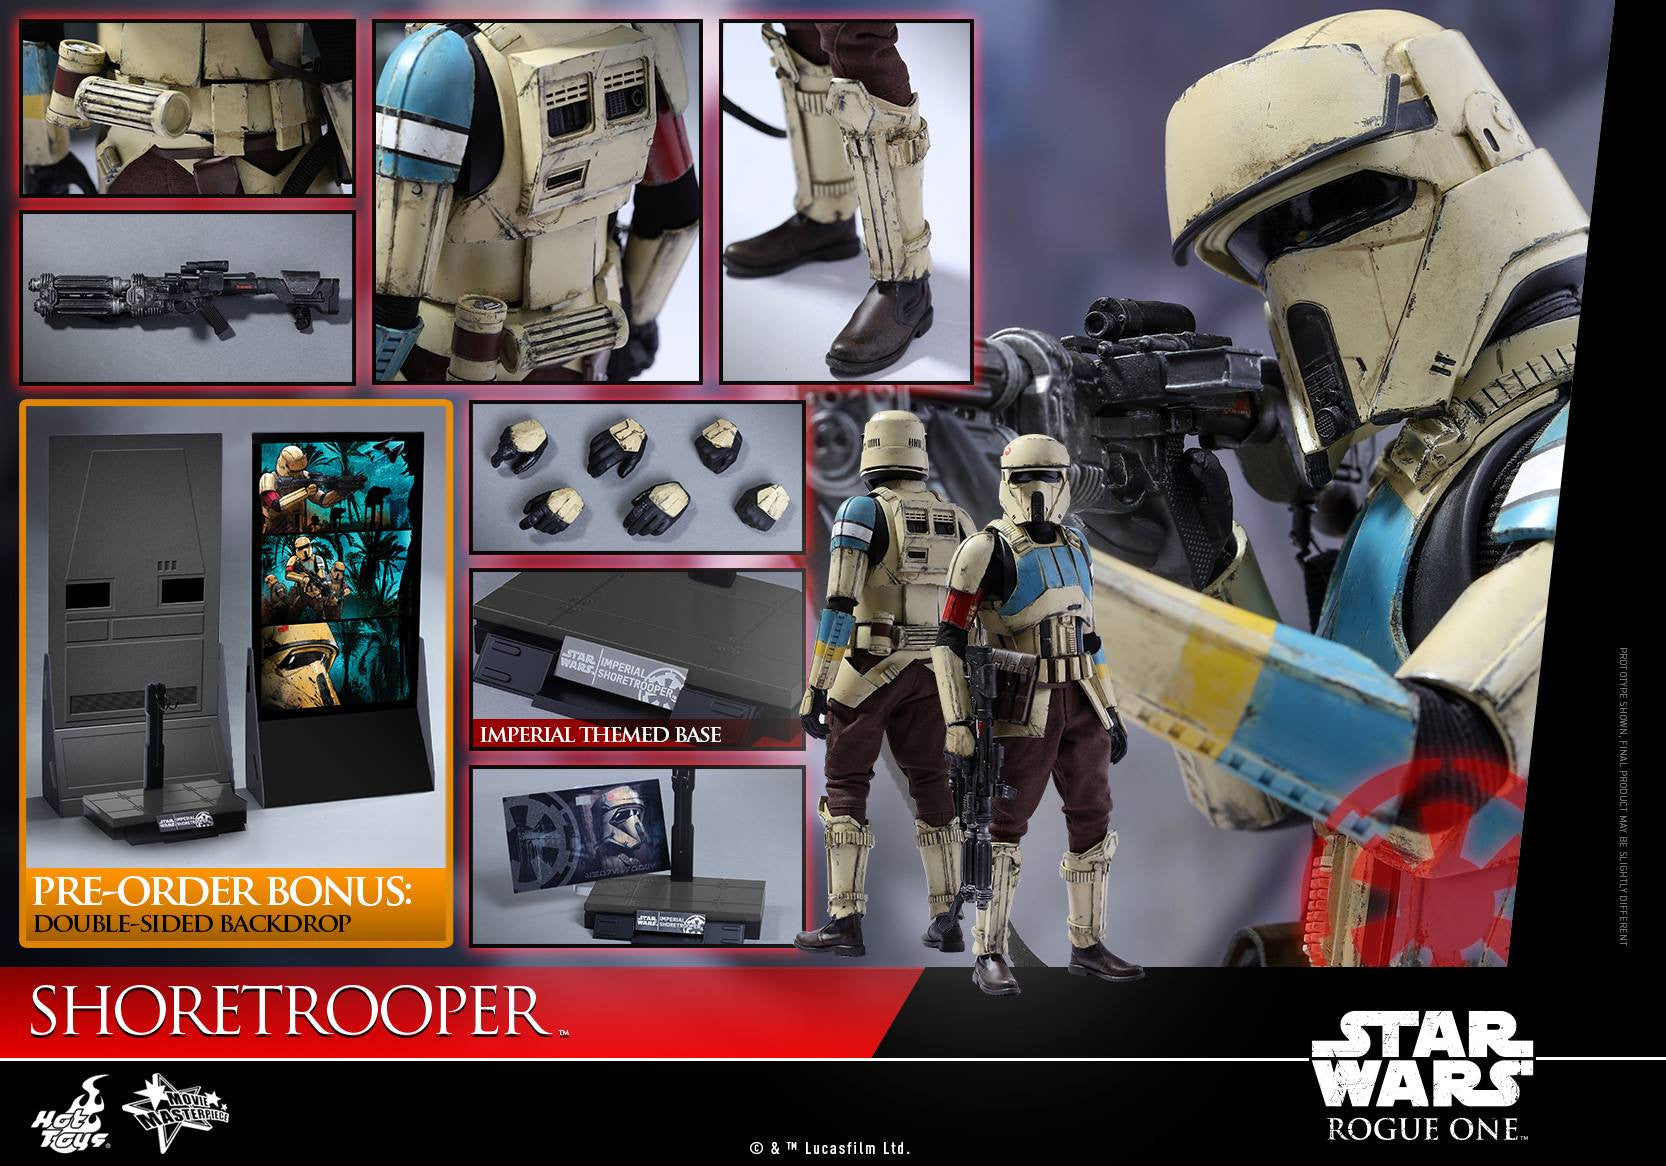 Hot Toys - MMS389 - Rogue One: A Star Wars Story - Shoretrooper - Marvelous Toys - 10